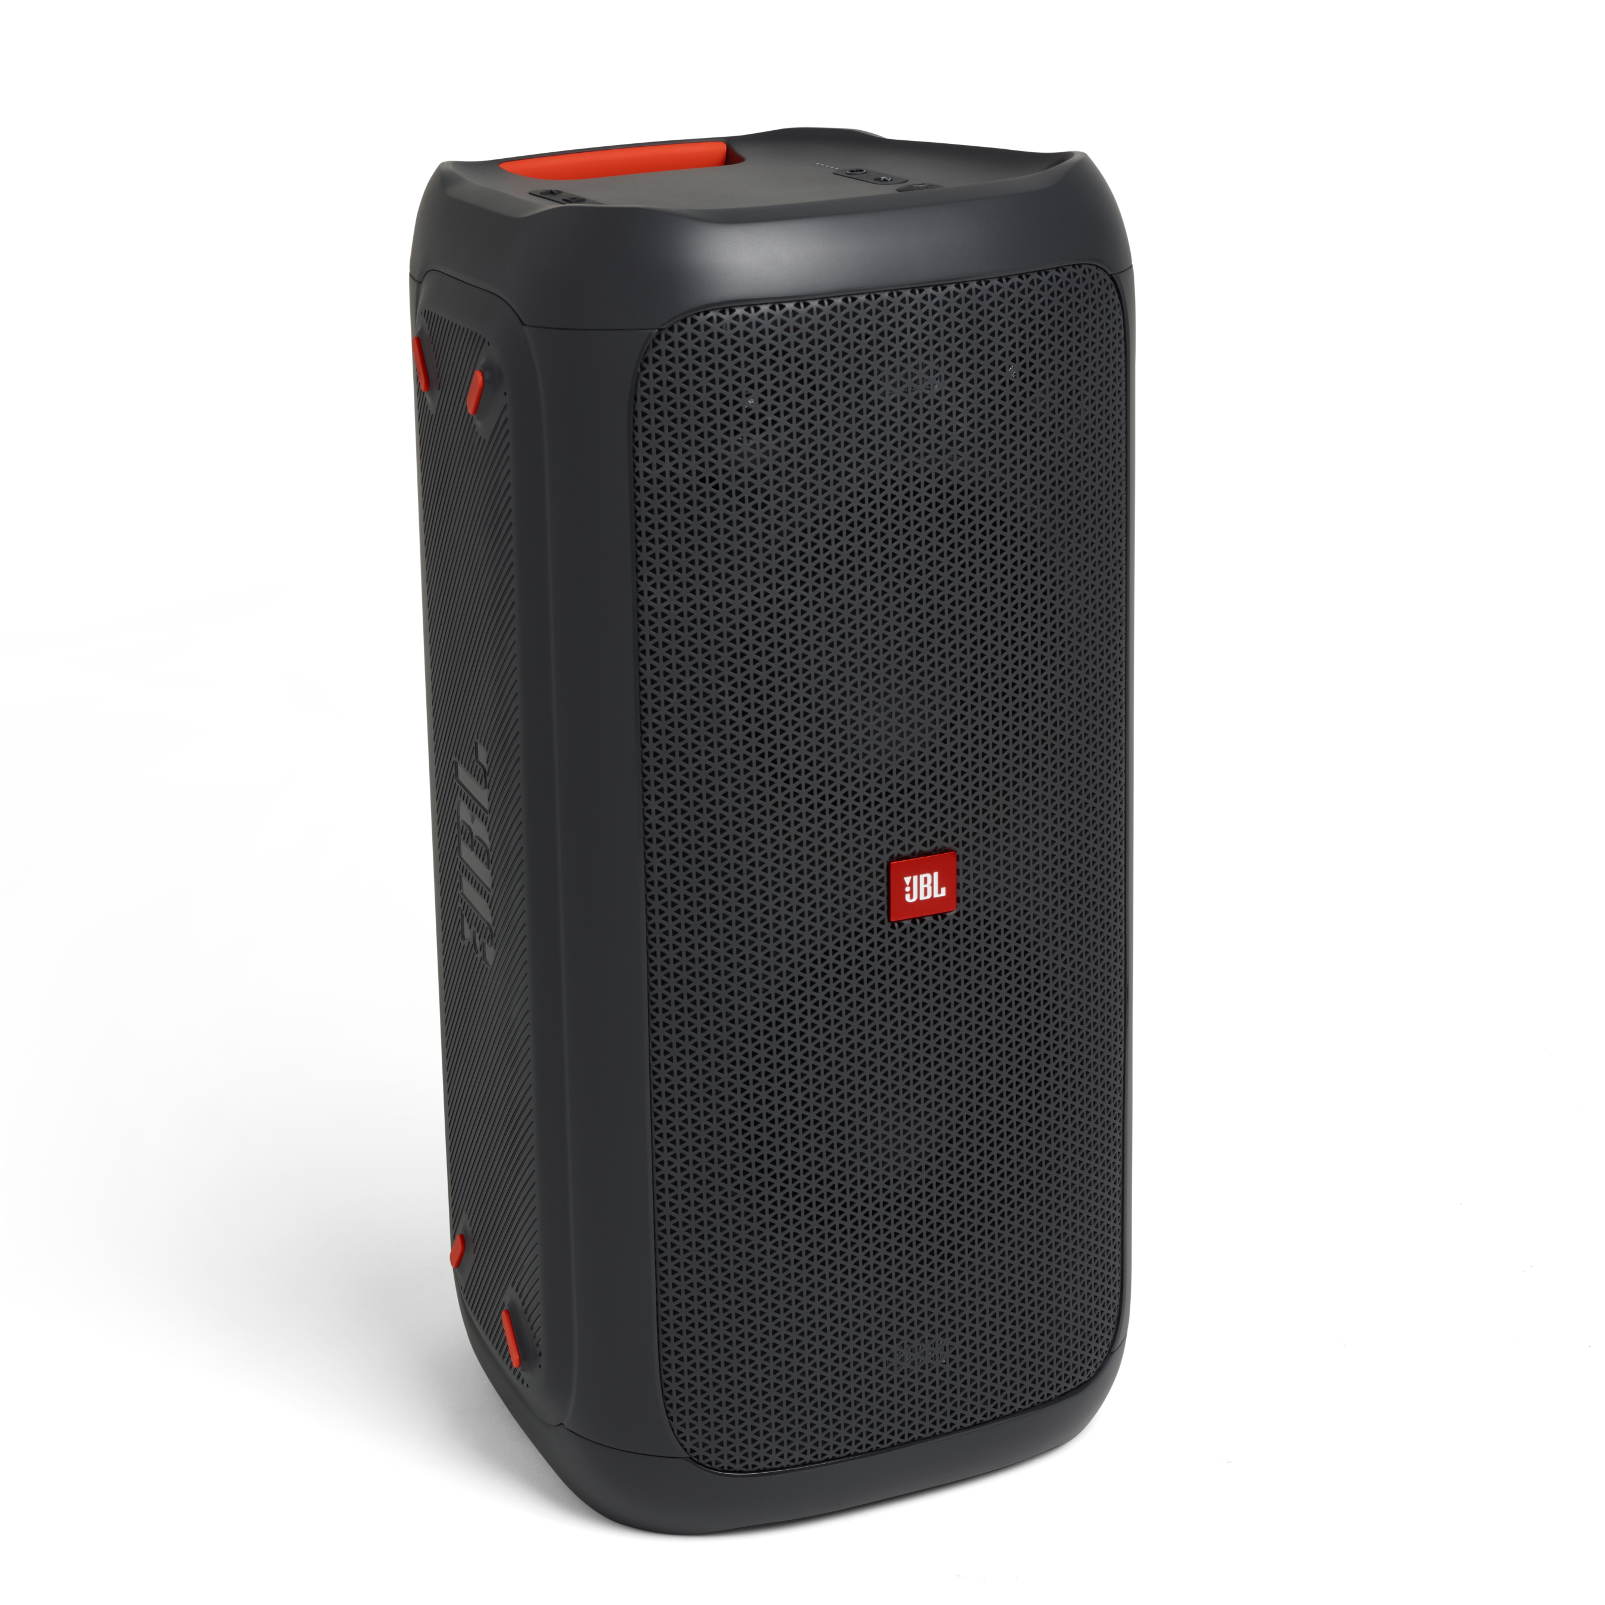 JBL PartyBox 100 - Black - Powerful portable Bluetooth party speaker with dynamic light show - Detailshot 1